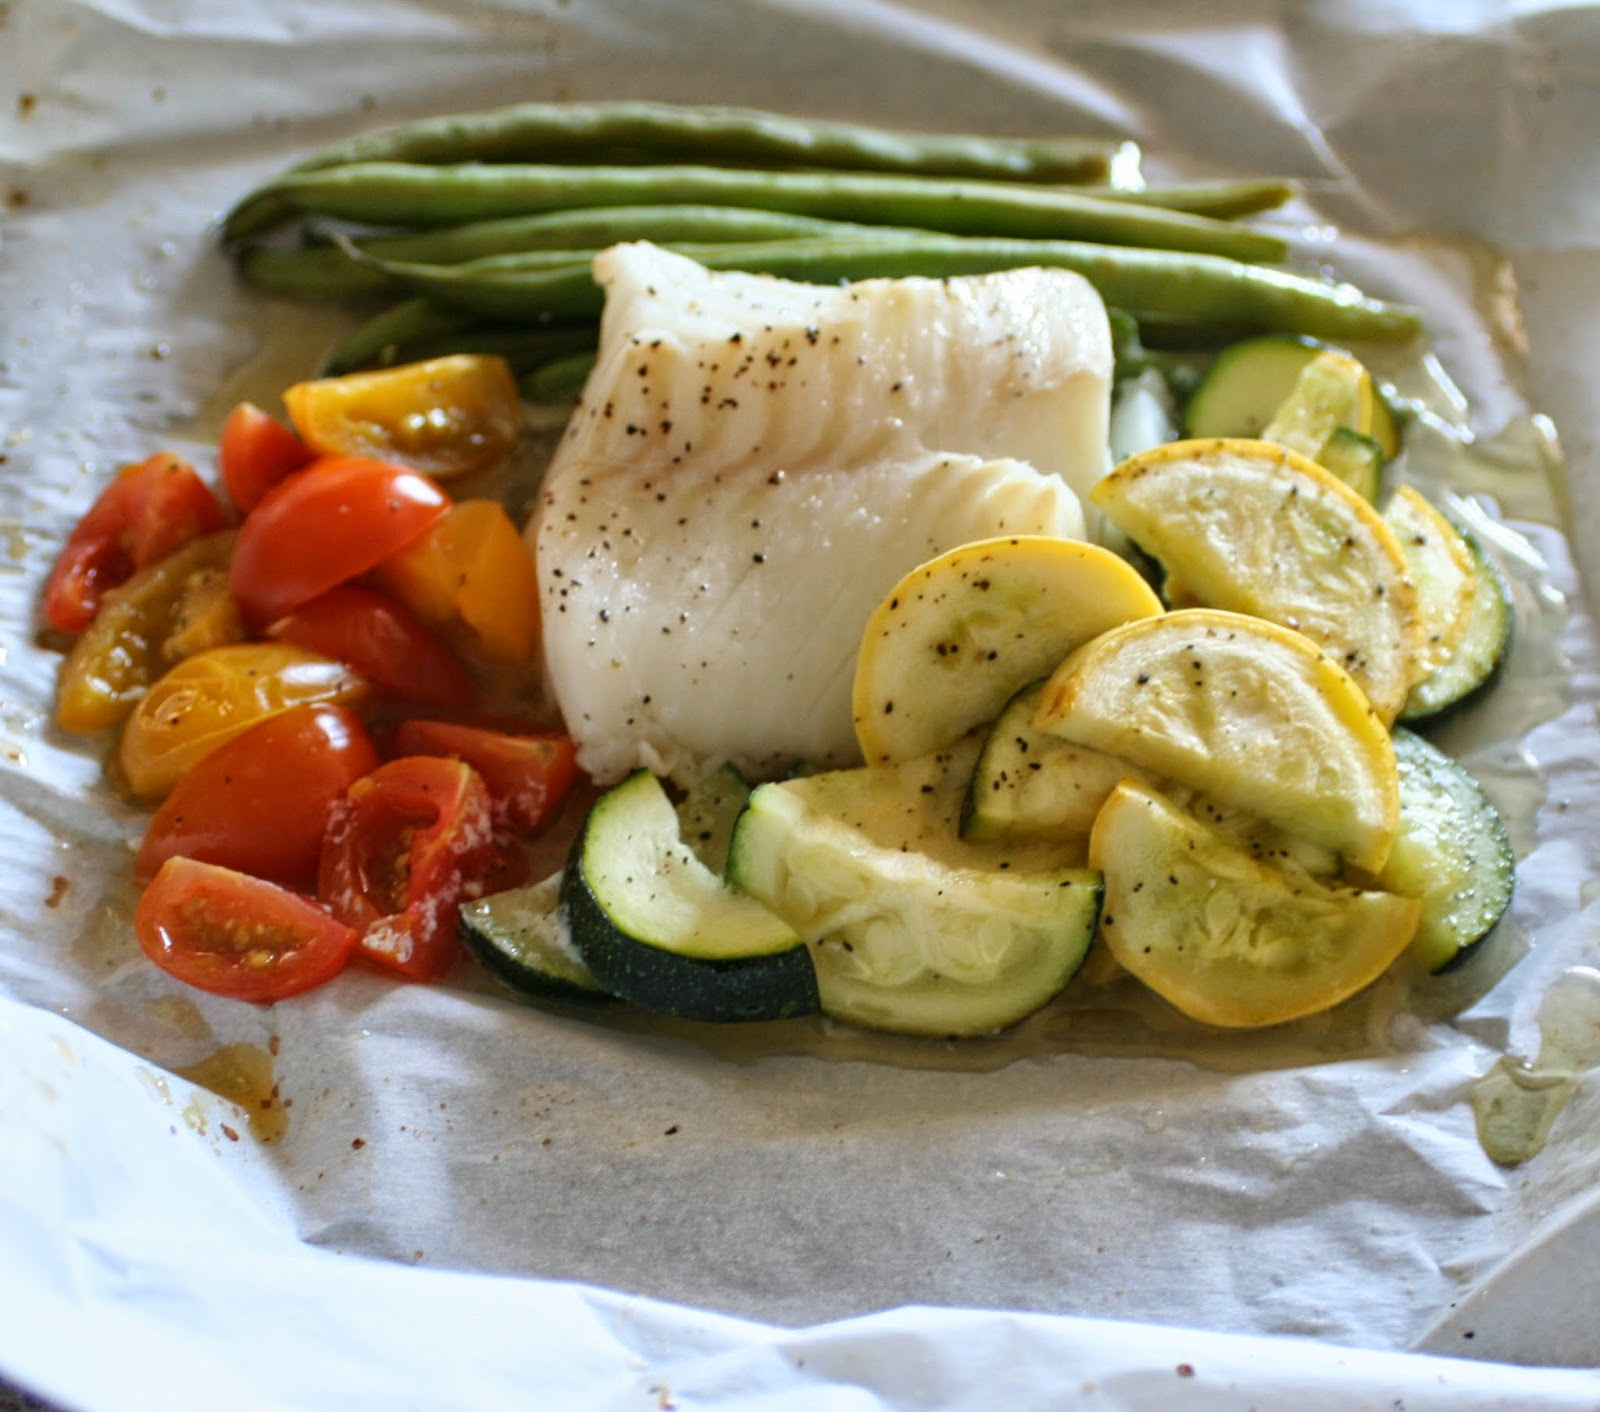 Baked cod with veggies in parchment jordan 39 s easy for How to bake cod fish in the oven